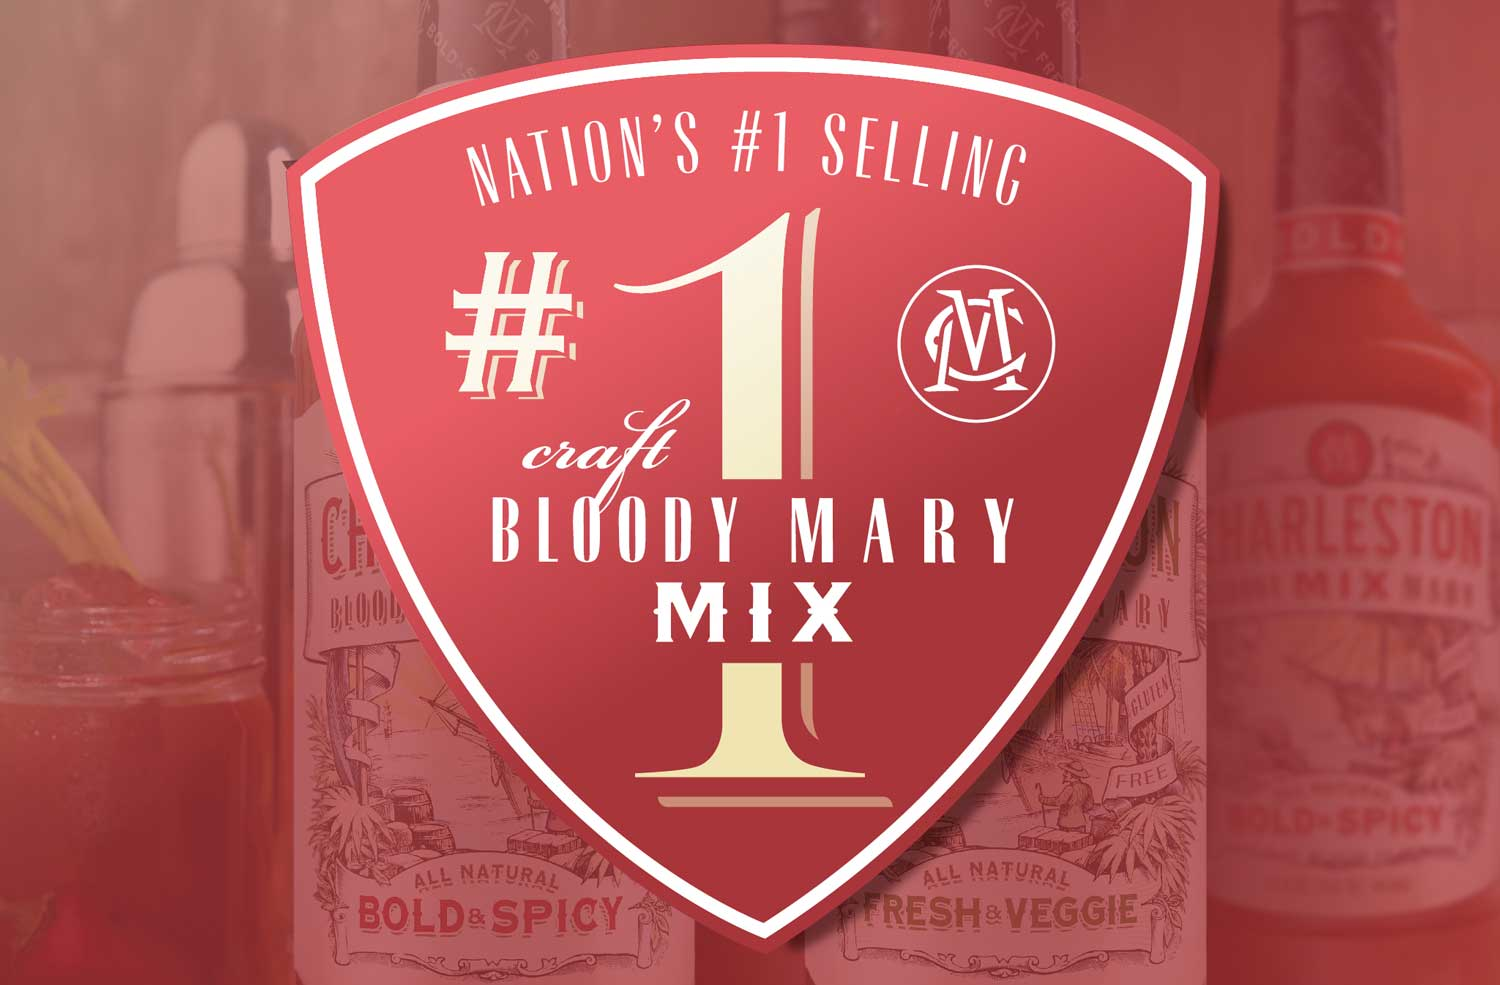 Charleston Bloody Mary Mix is #1